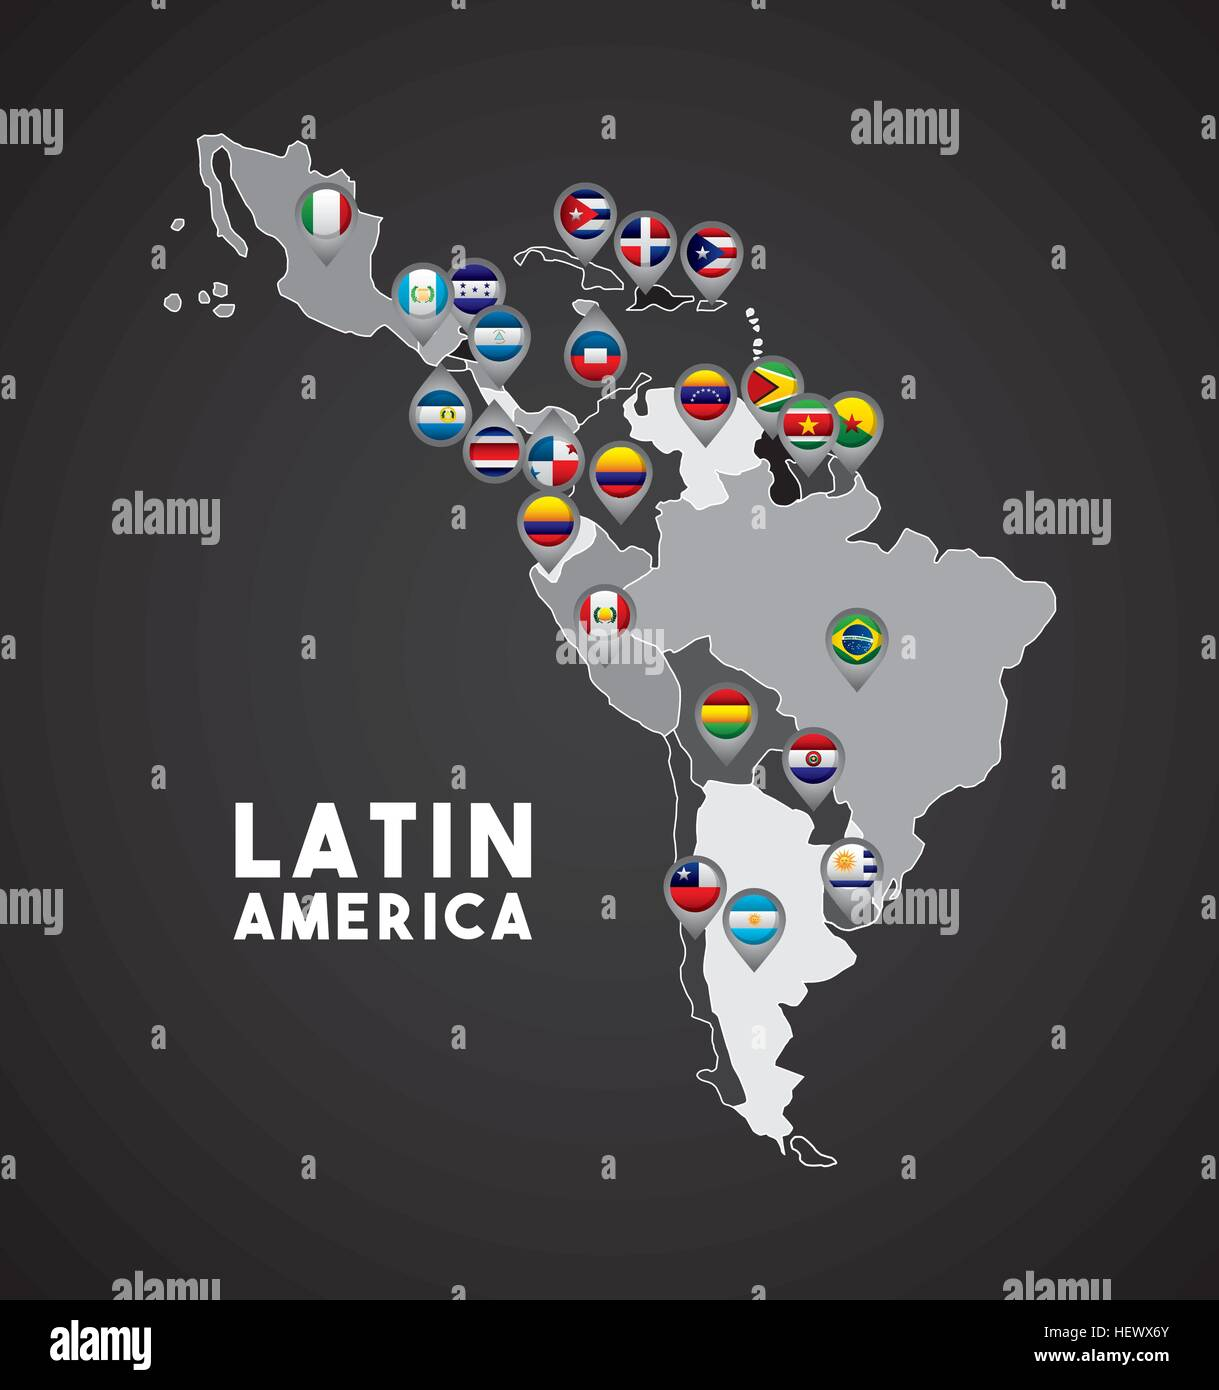 Worksheet. Map of Latin America with the flags of countries on location pins